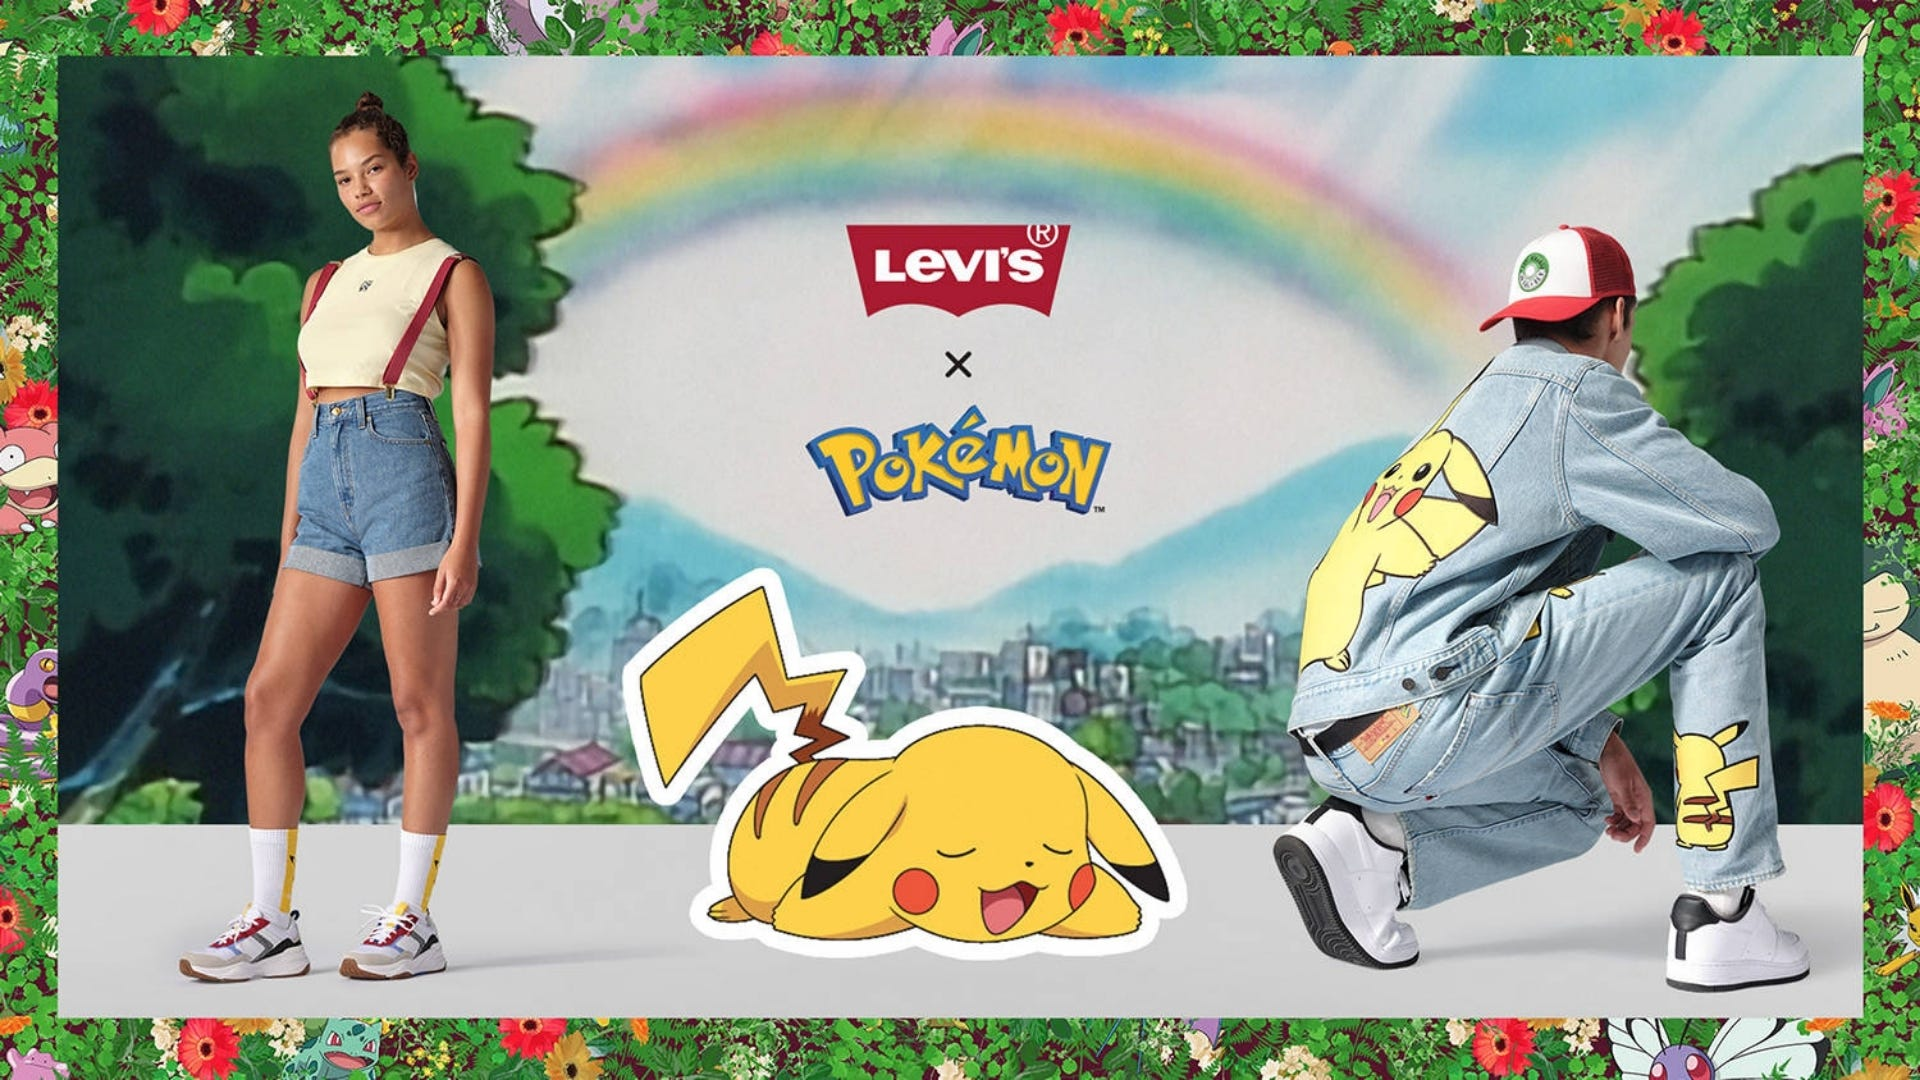 A girl stands wearing blue shorts and overalls next to a man squatting wearing a jean jacket and pants with Pikachu on them.